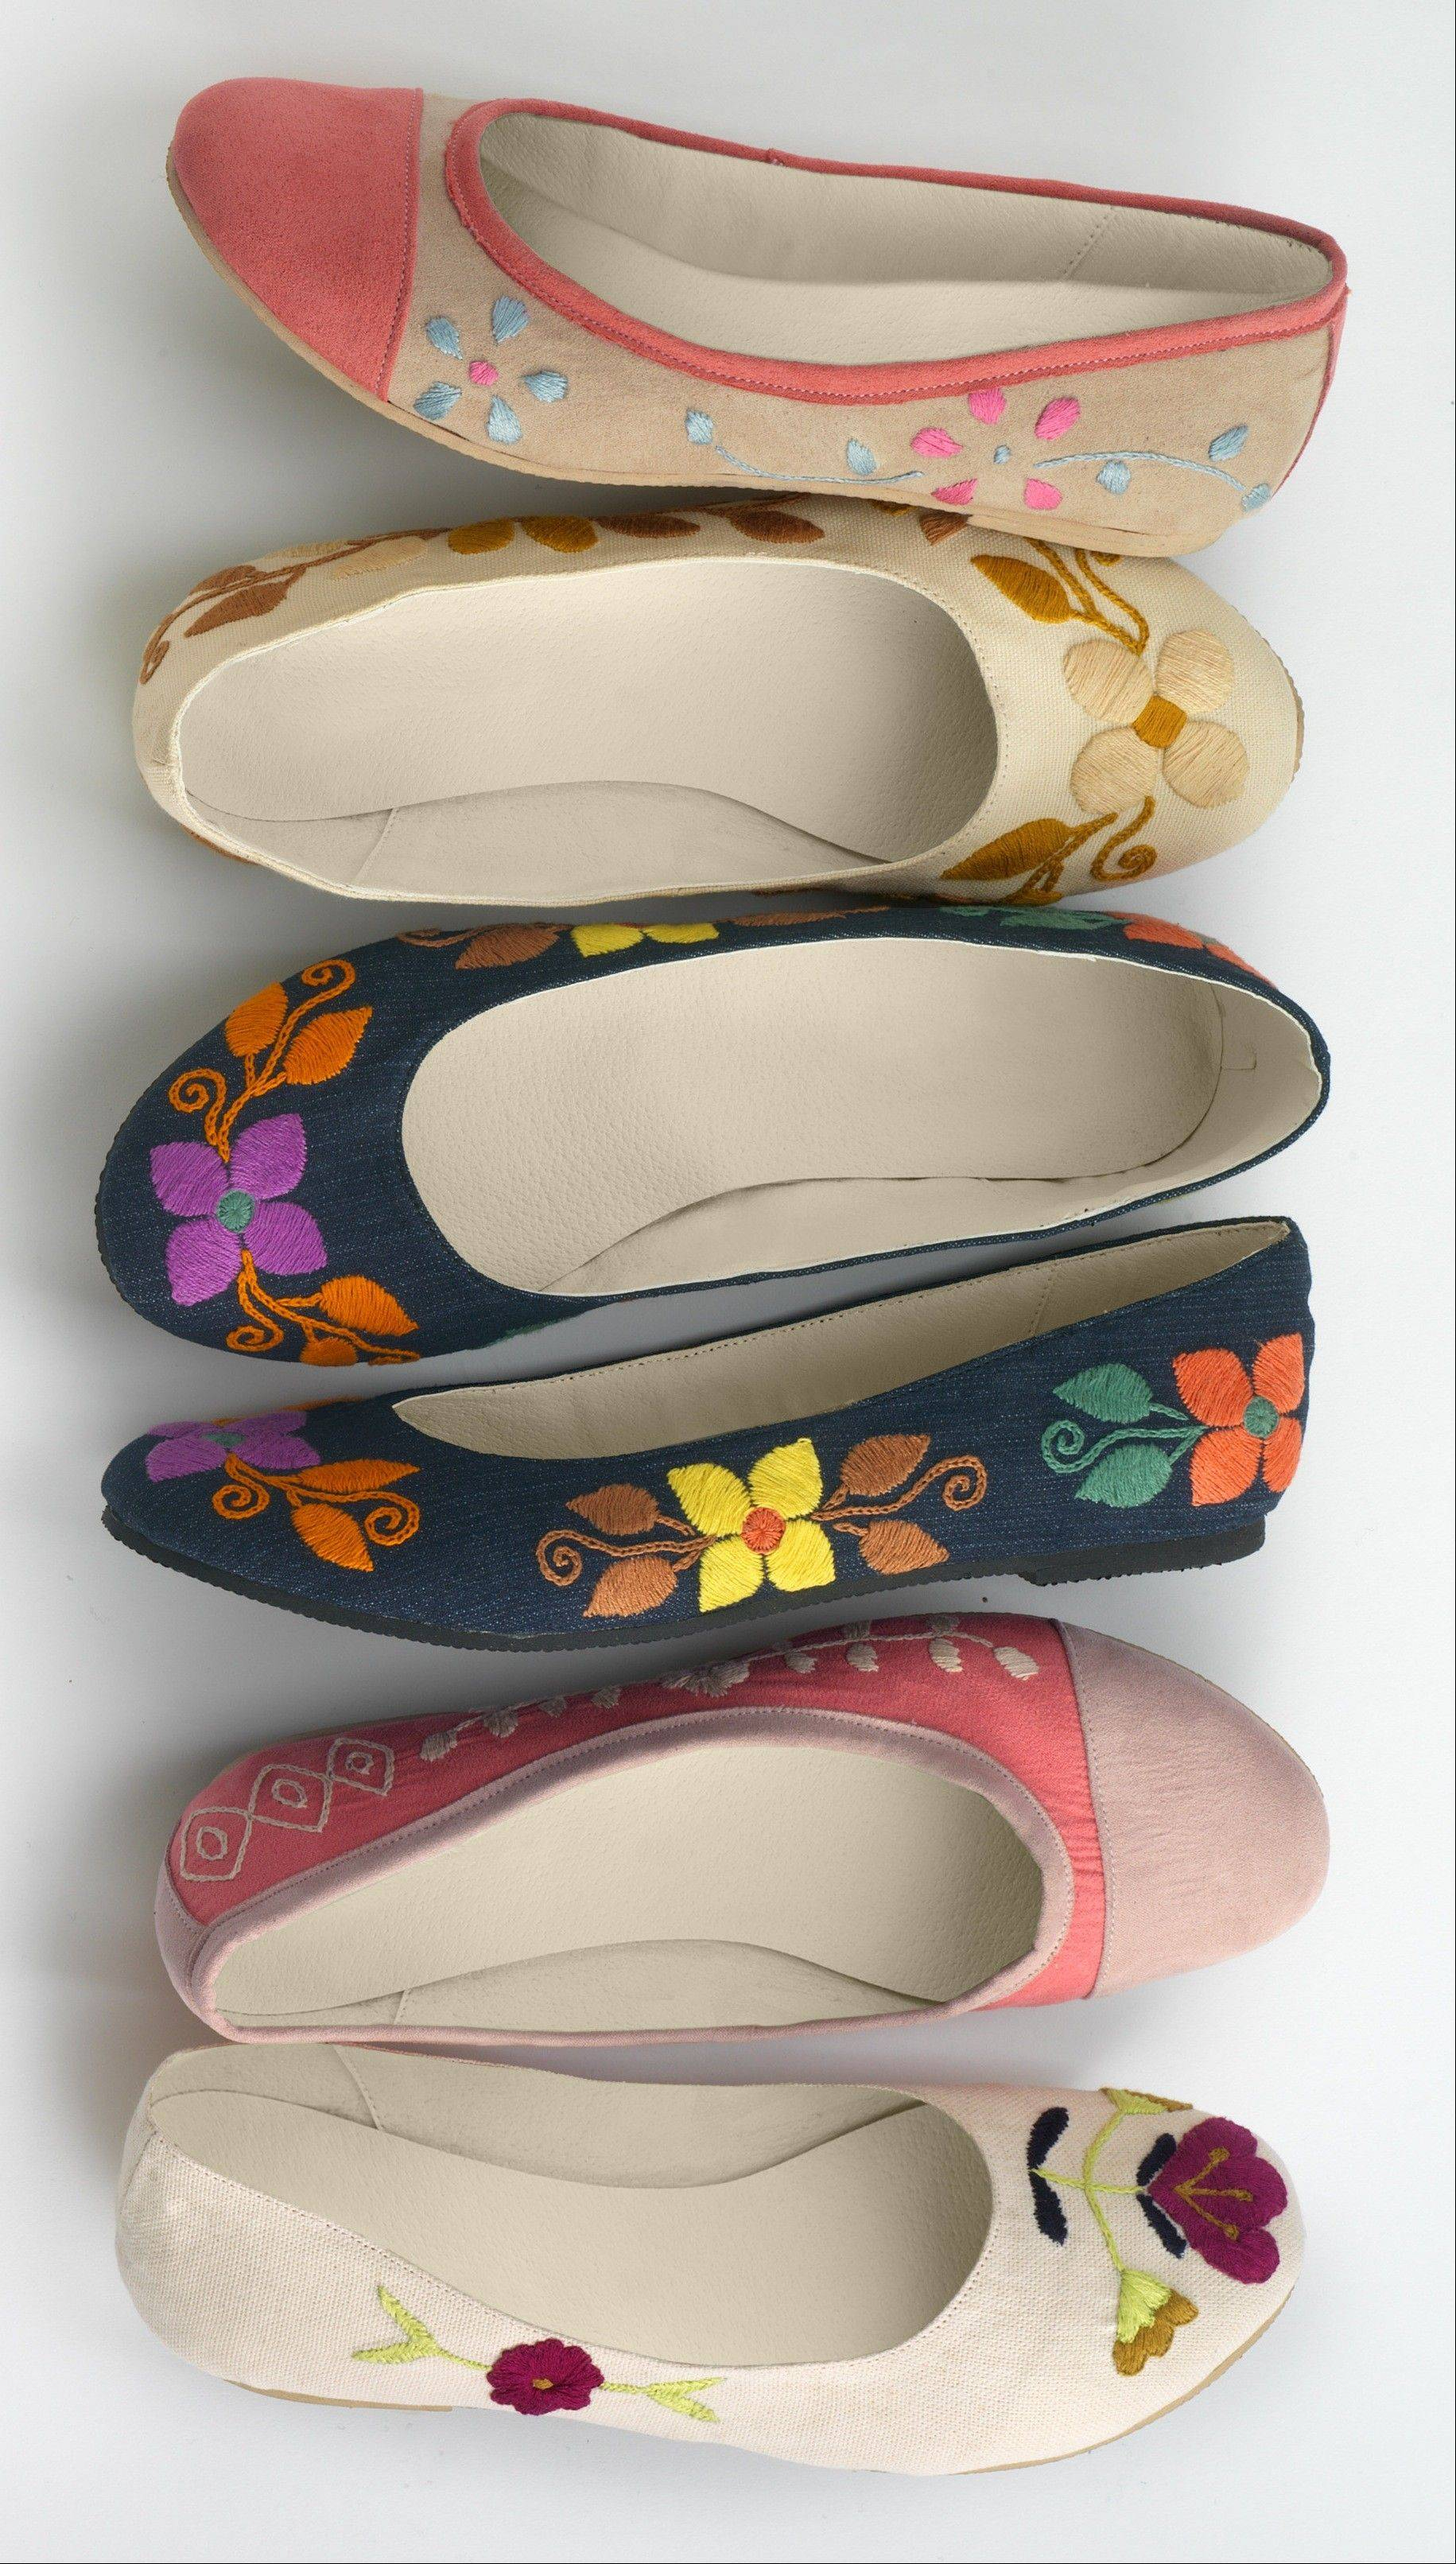 This undated product image provided by Fair Indigo shows one of the company's products. Fair Indigo is an online retailer that sells clothes and accessories that are certified by Fair Trade U.S.A., including $59.90 pima organic cotton dresses, $45.90 faux wrap skirts and $100 floral ballet flats.